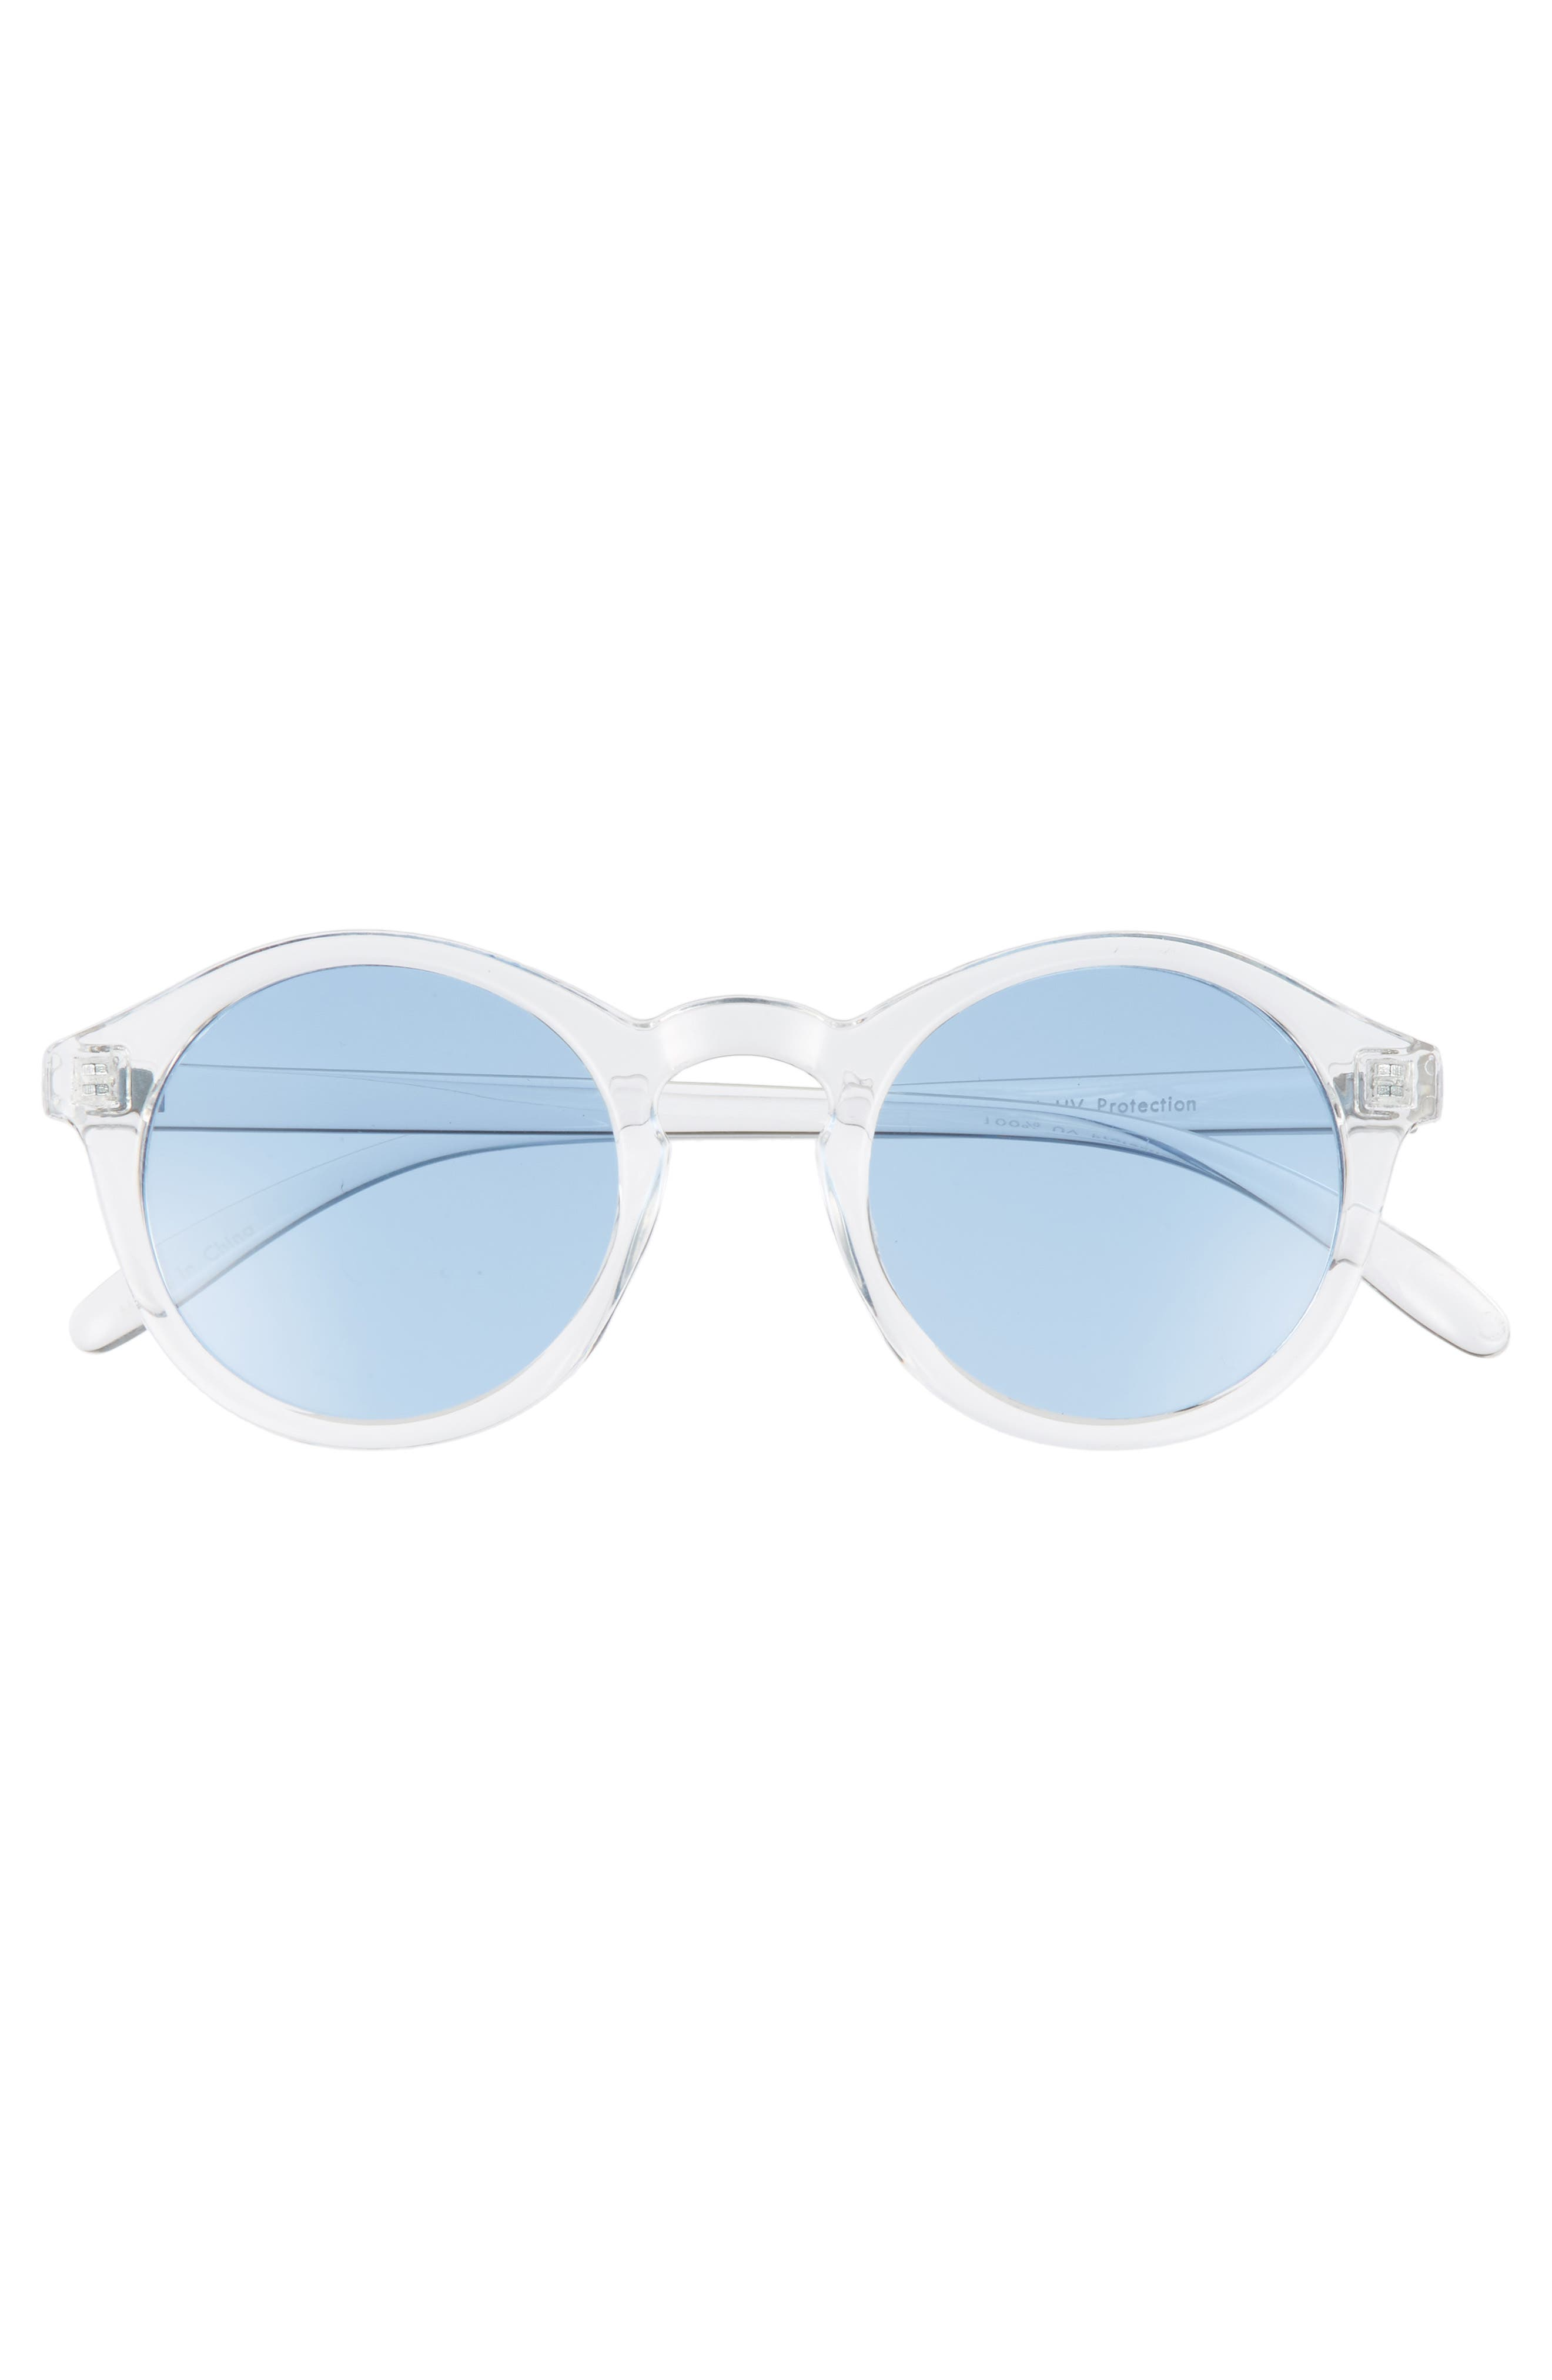 45mm Clear Plastic Small Round Sunglasses,                             Alternate thumbnail 3, color,                             100